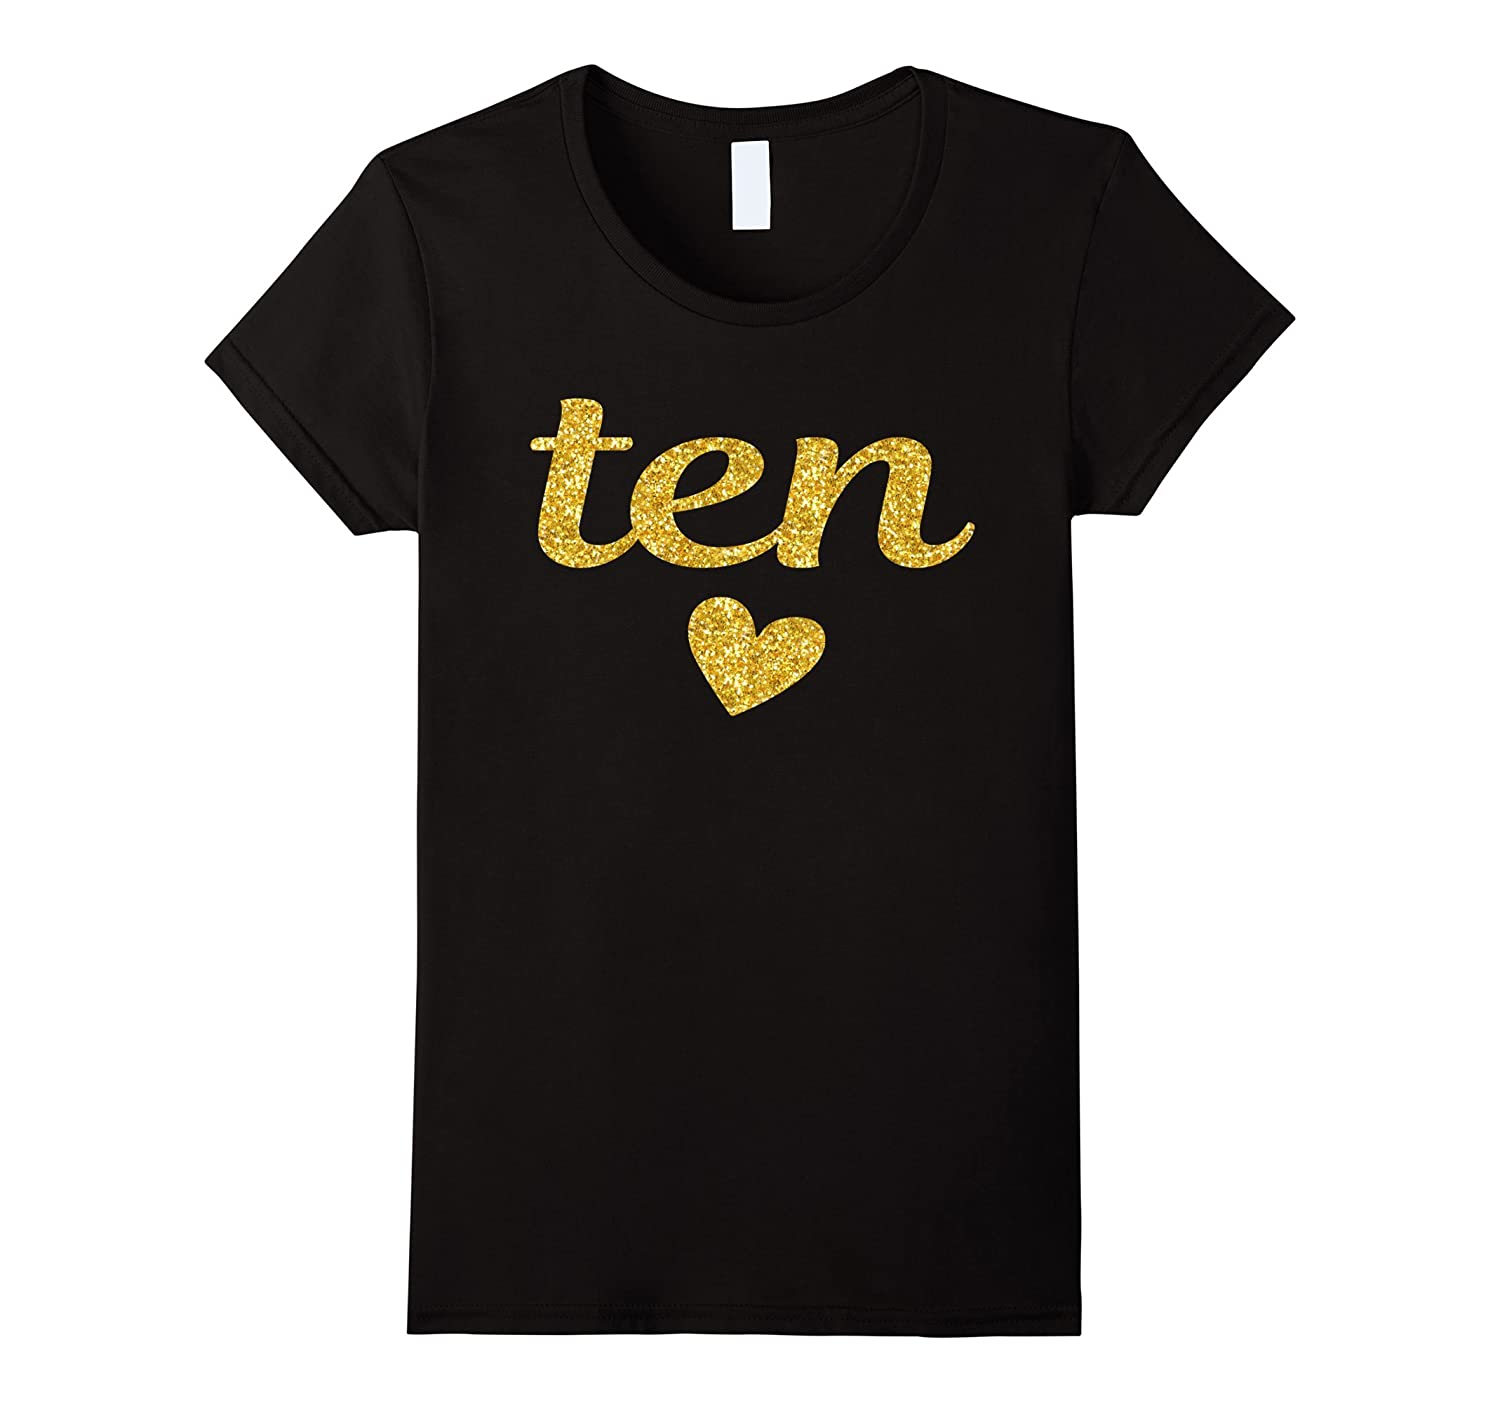 10th Birthday Shirt For Girls: Ten Year Old Girl Gift Tee-RT